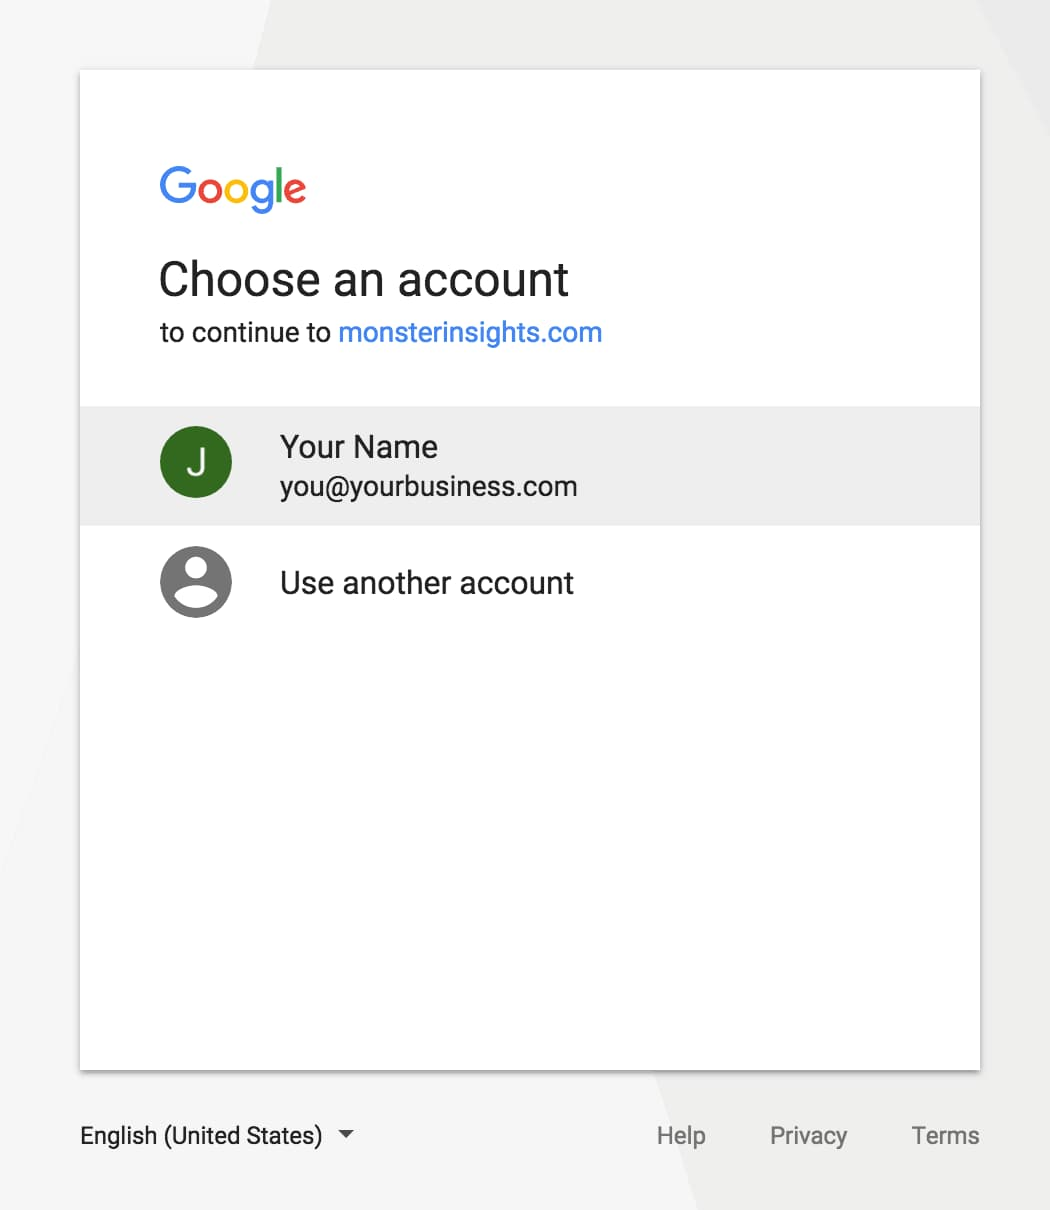 choose google account to connect with monsterinsights